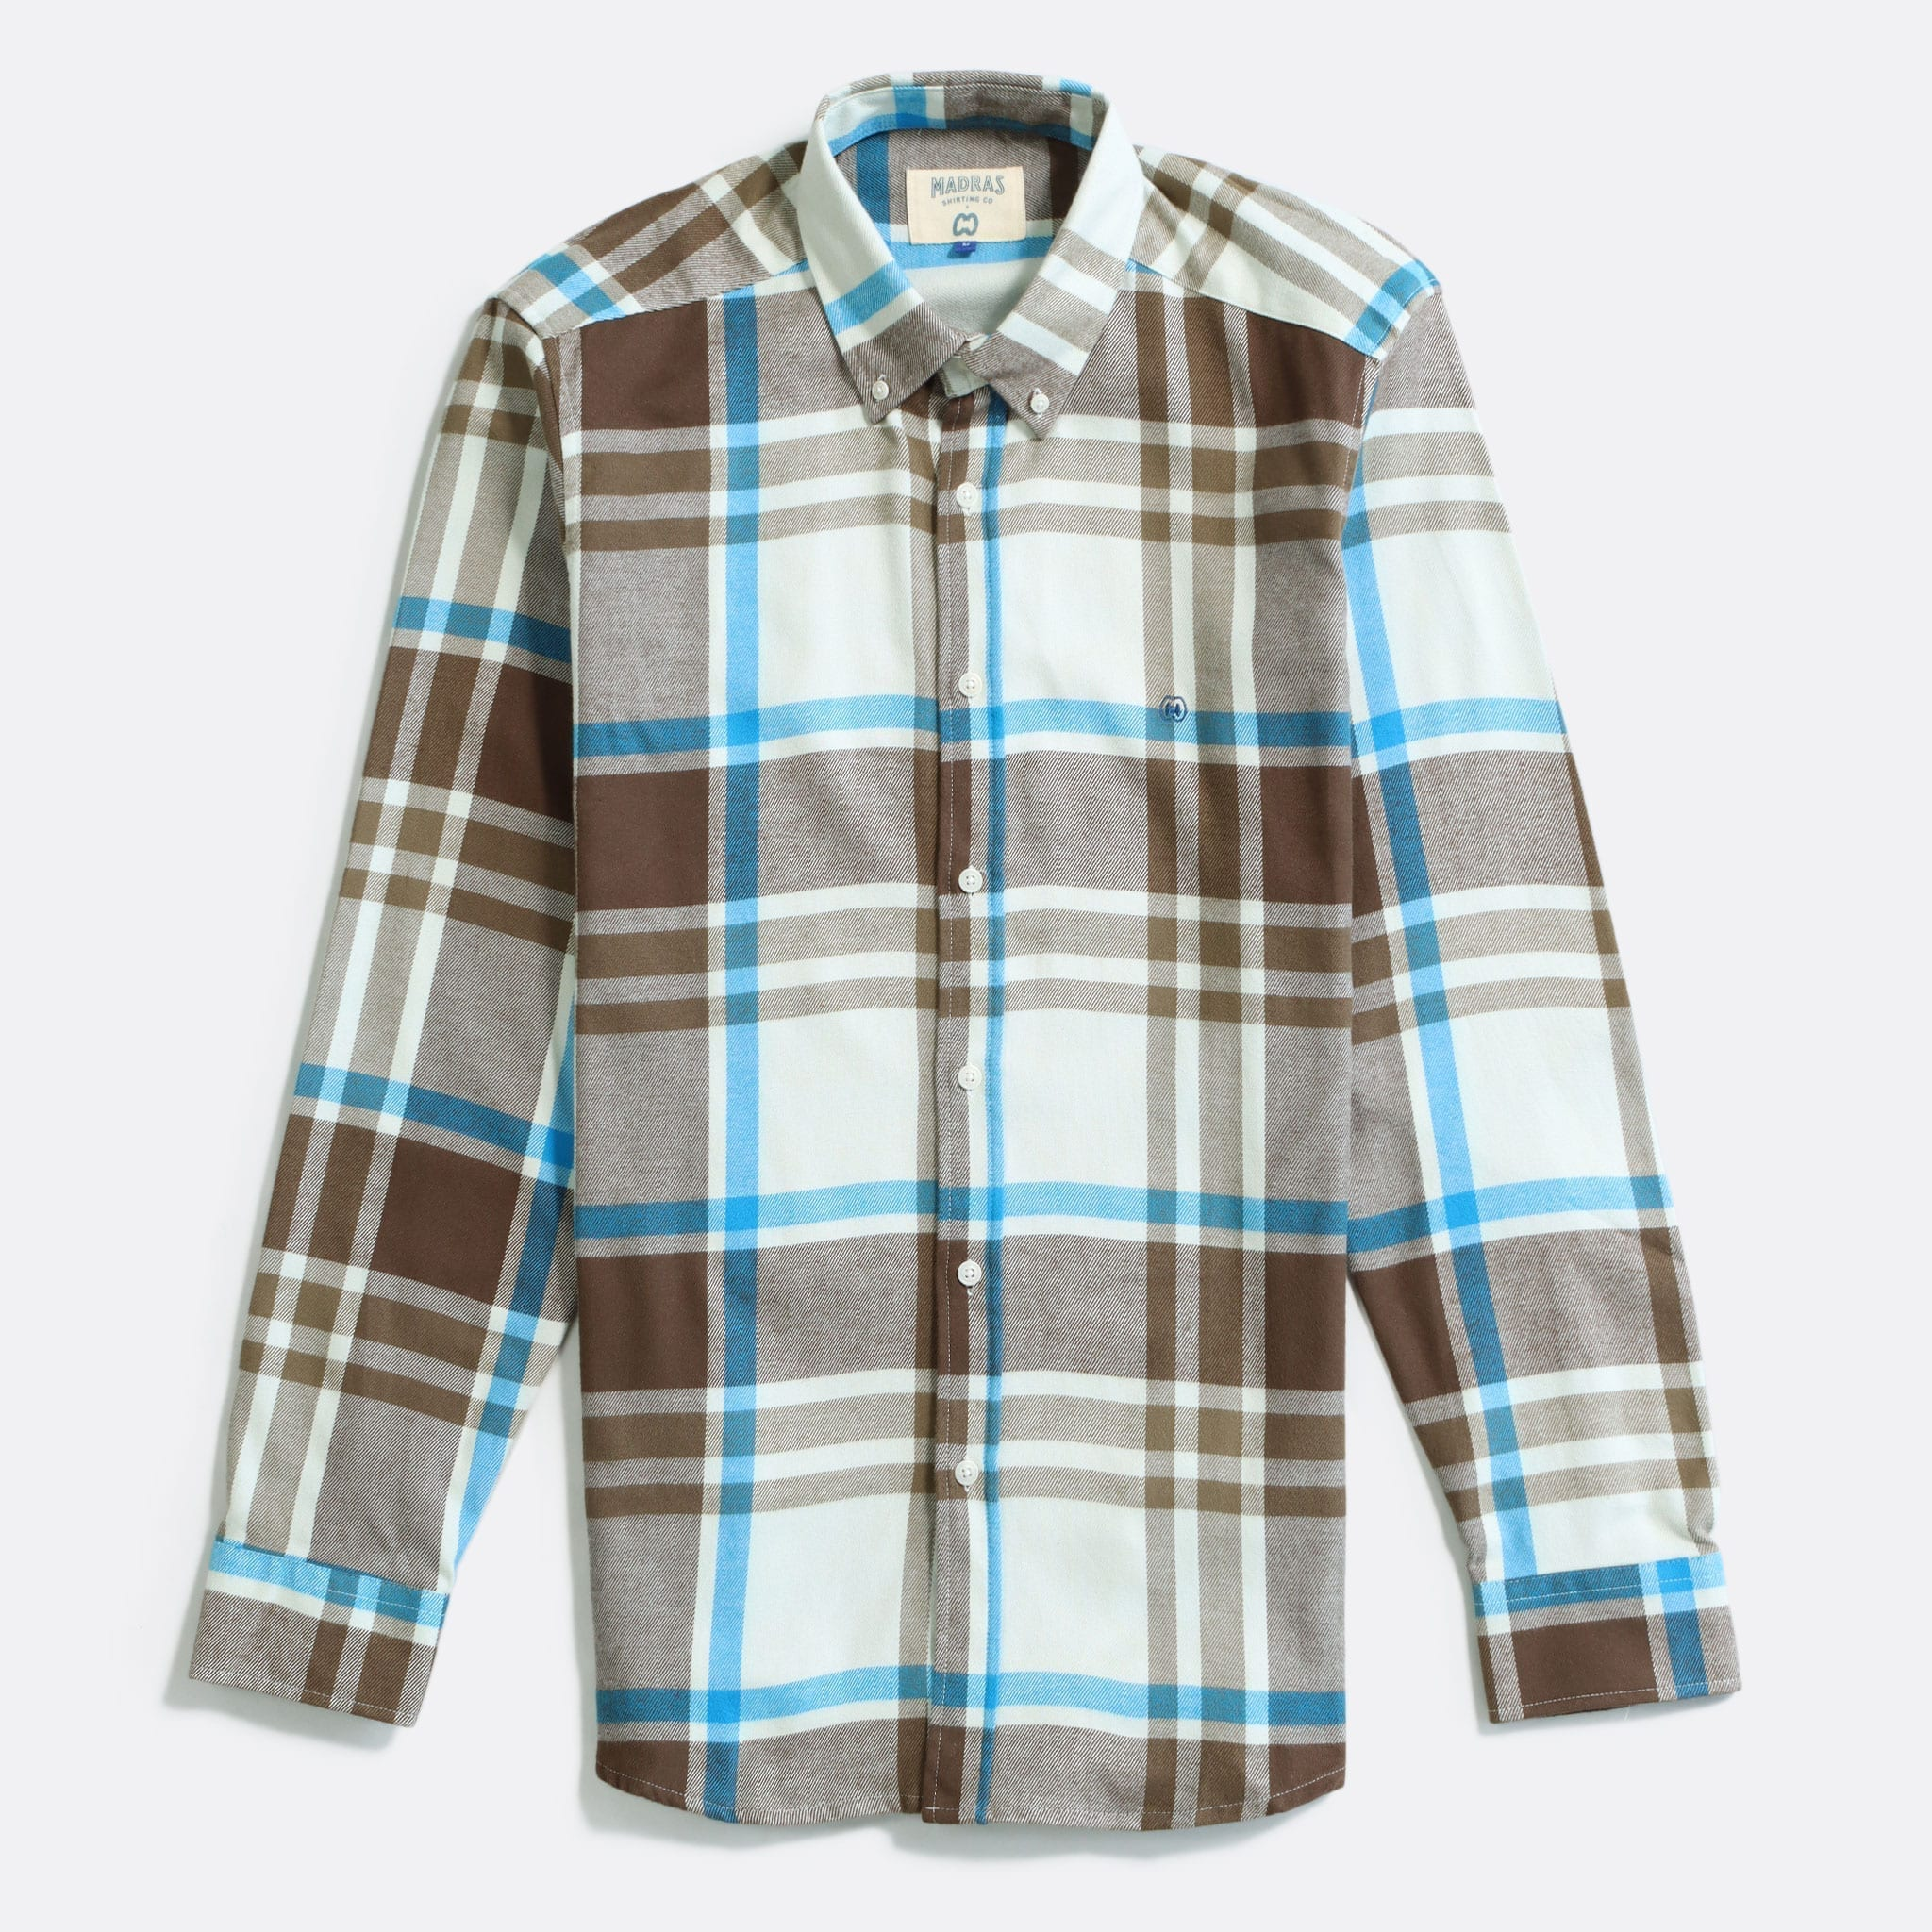 MSCo x Casual Co – Mod Button Down Long Sleeve Shirt a White Brown Check Up-cycled Cotton Flannel Fabric